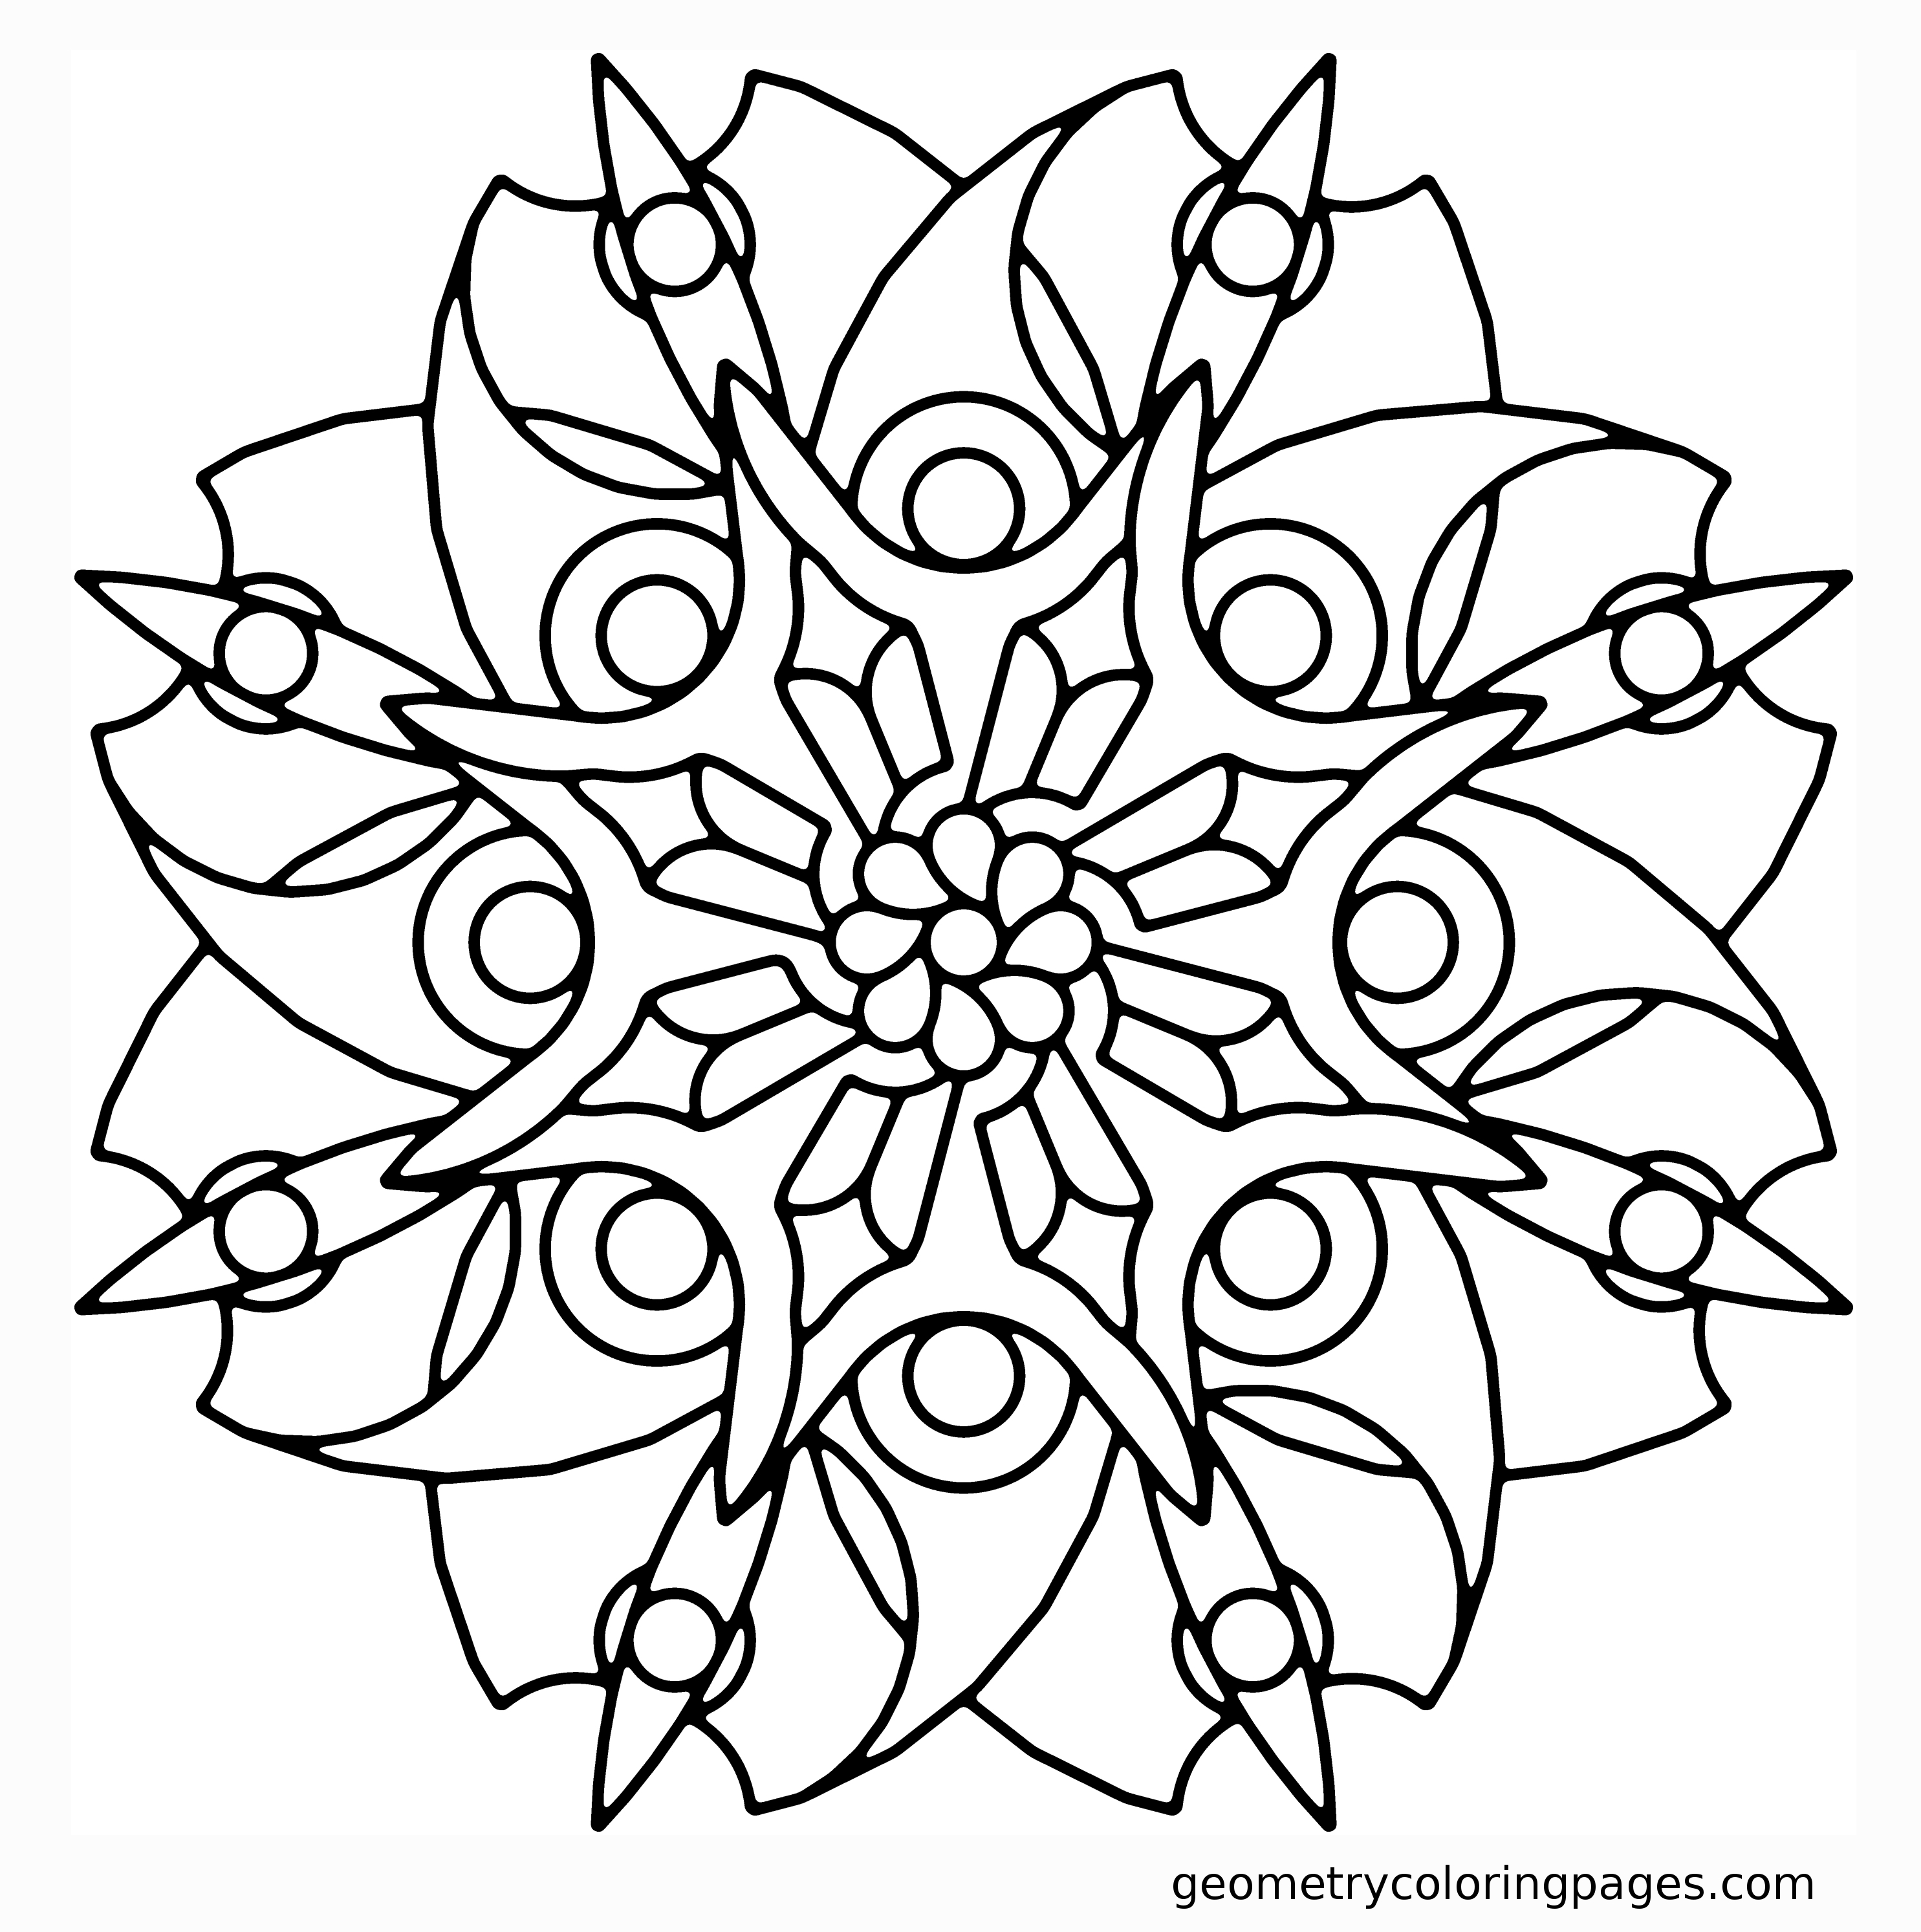 geometric coloring pages advanced nature - photo#28